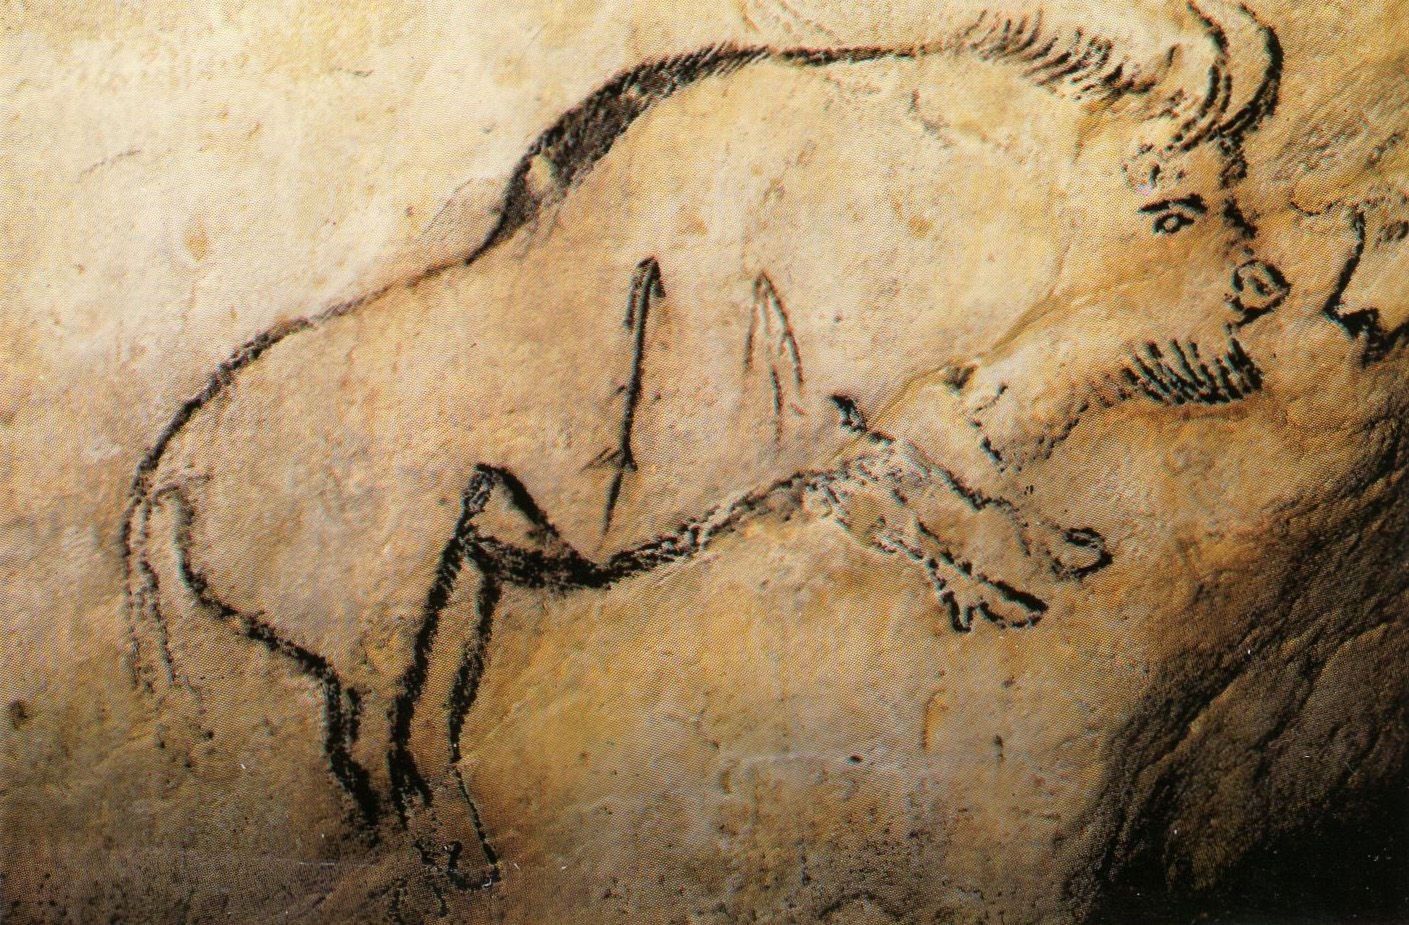 The recognition that the now famous cave paintings in